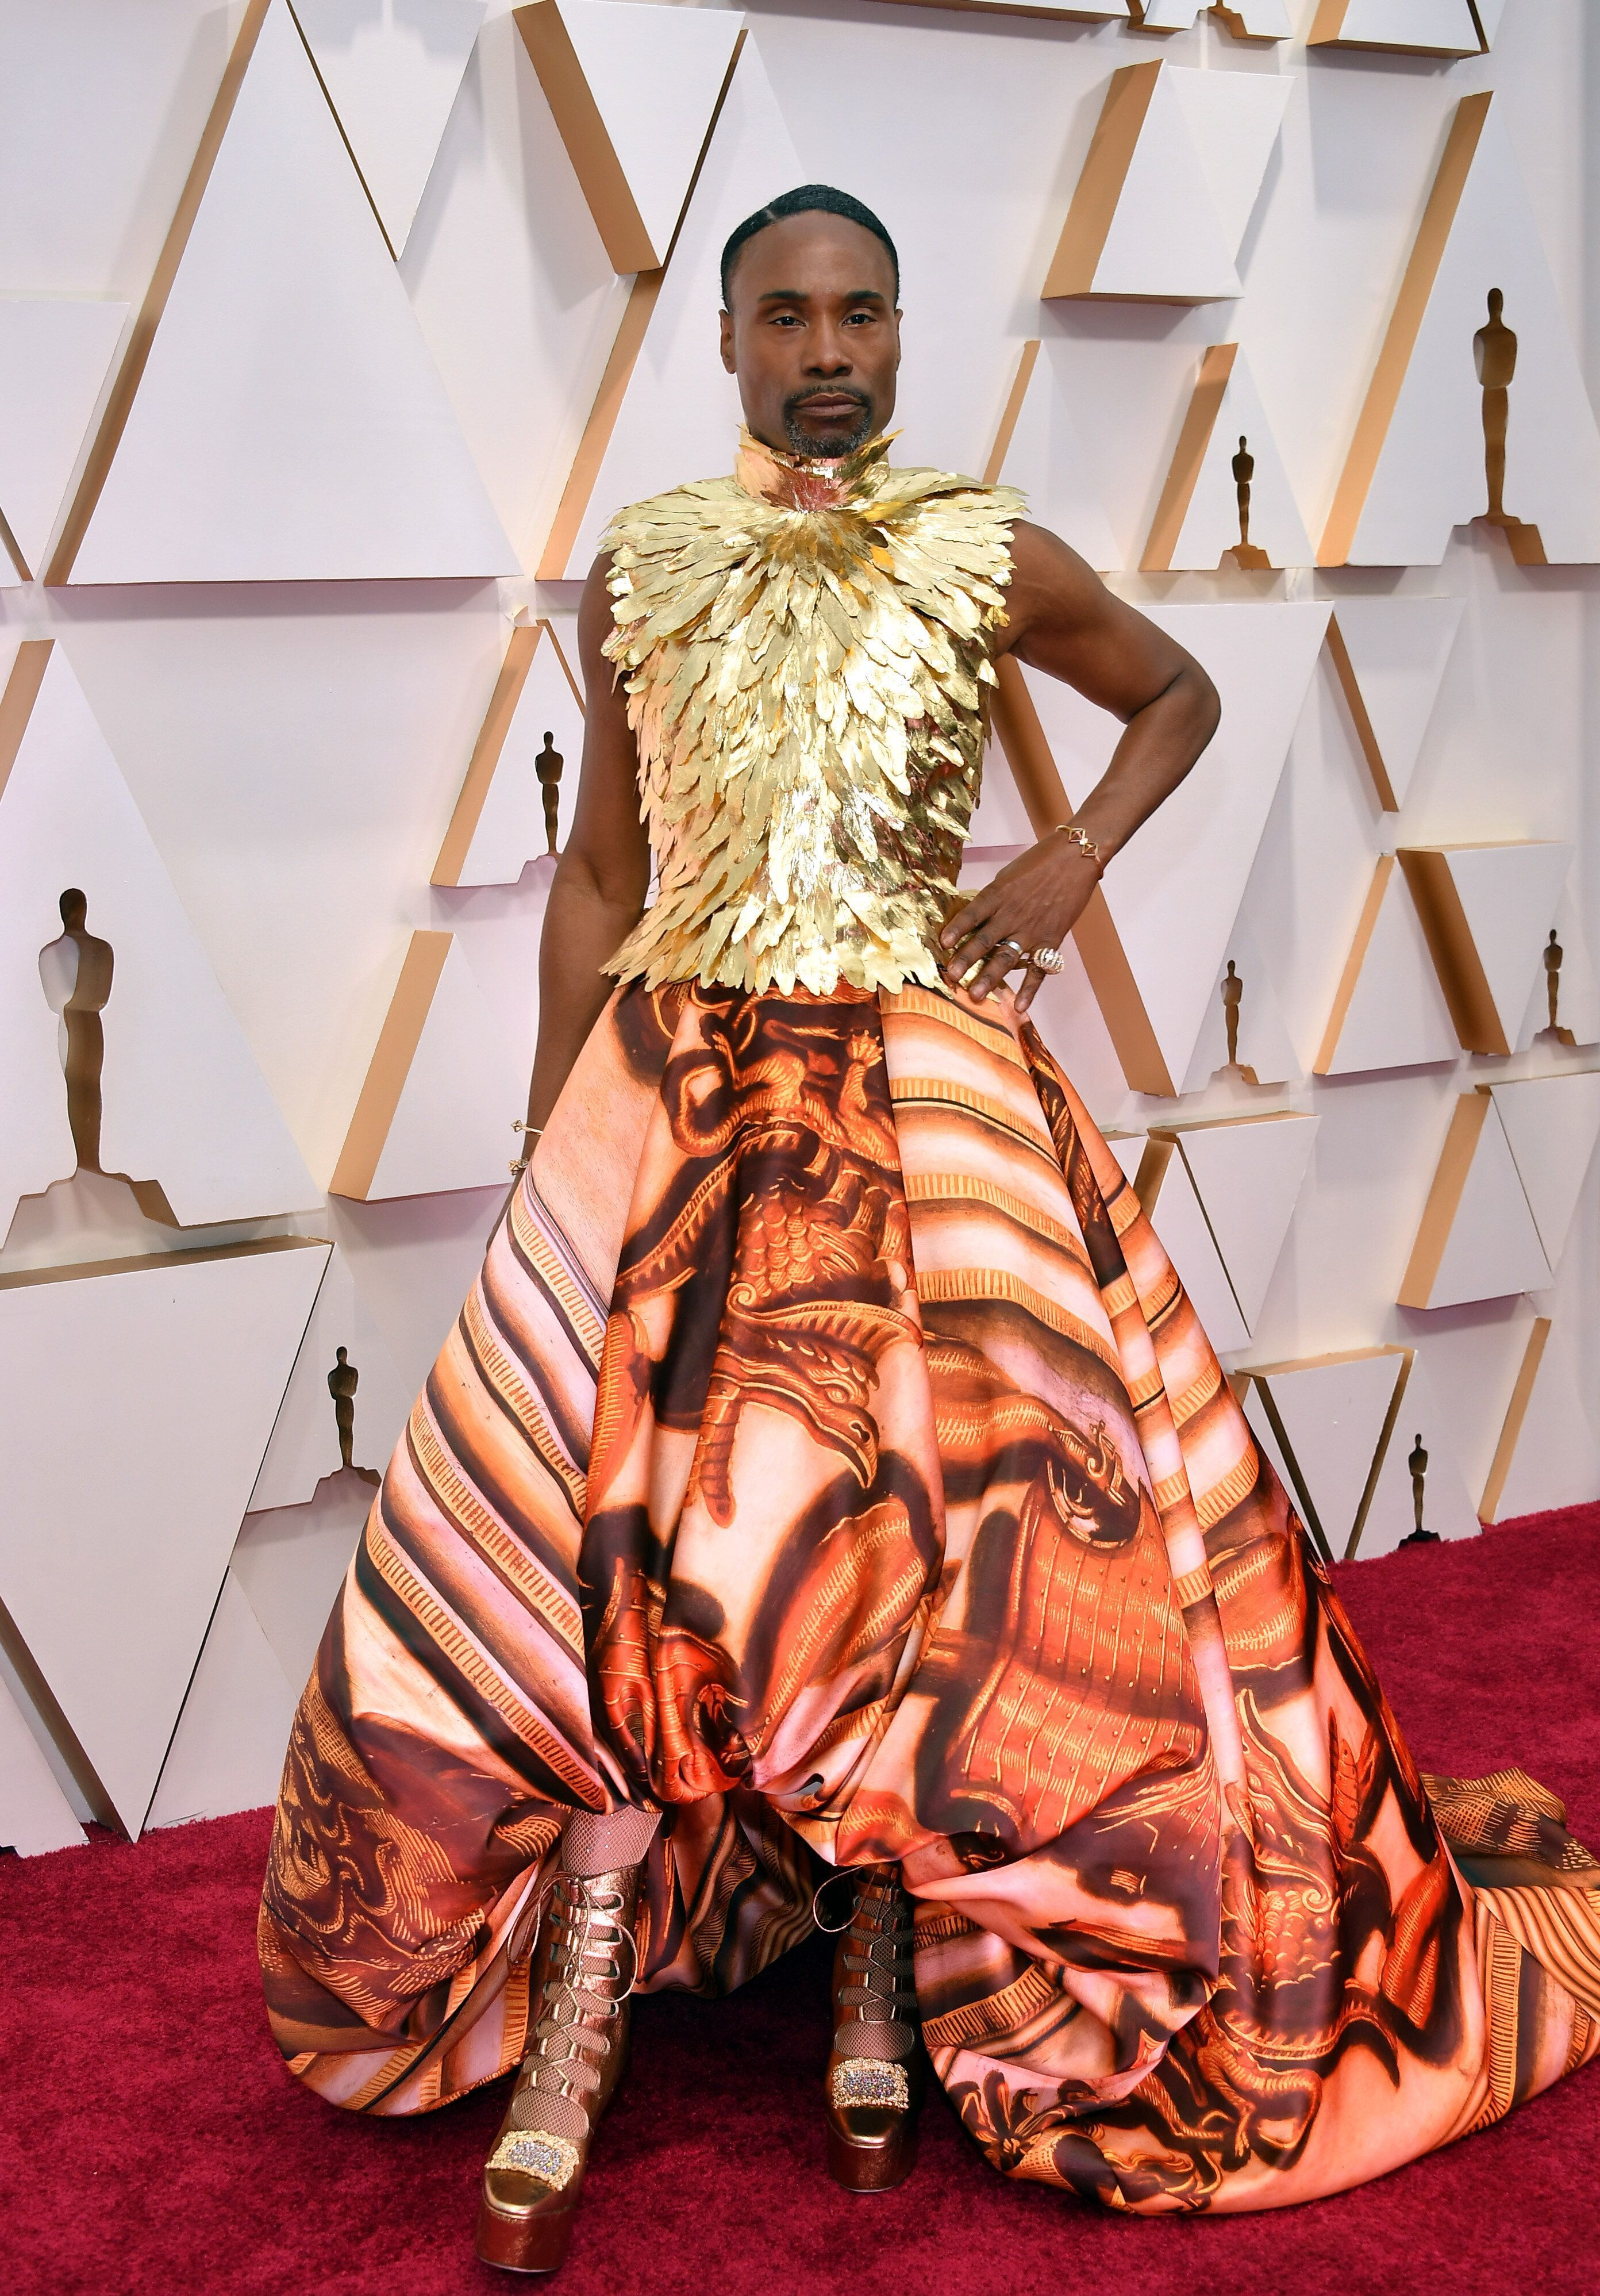 Oscars 2020 See All The Best Dressed Stars At The Academy Awards In 2020 Nice Dresses Red Carpet Oscars Dresses